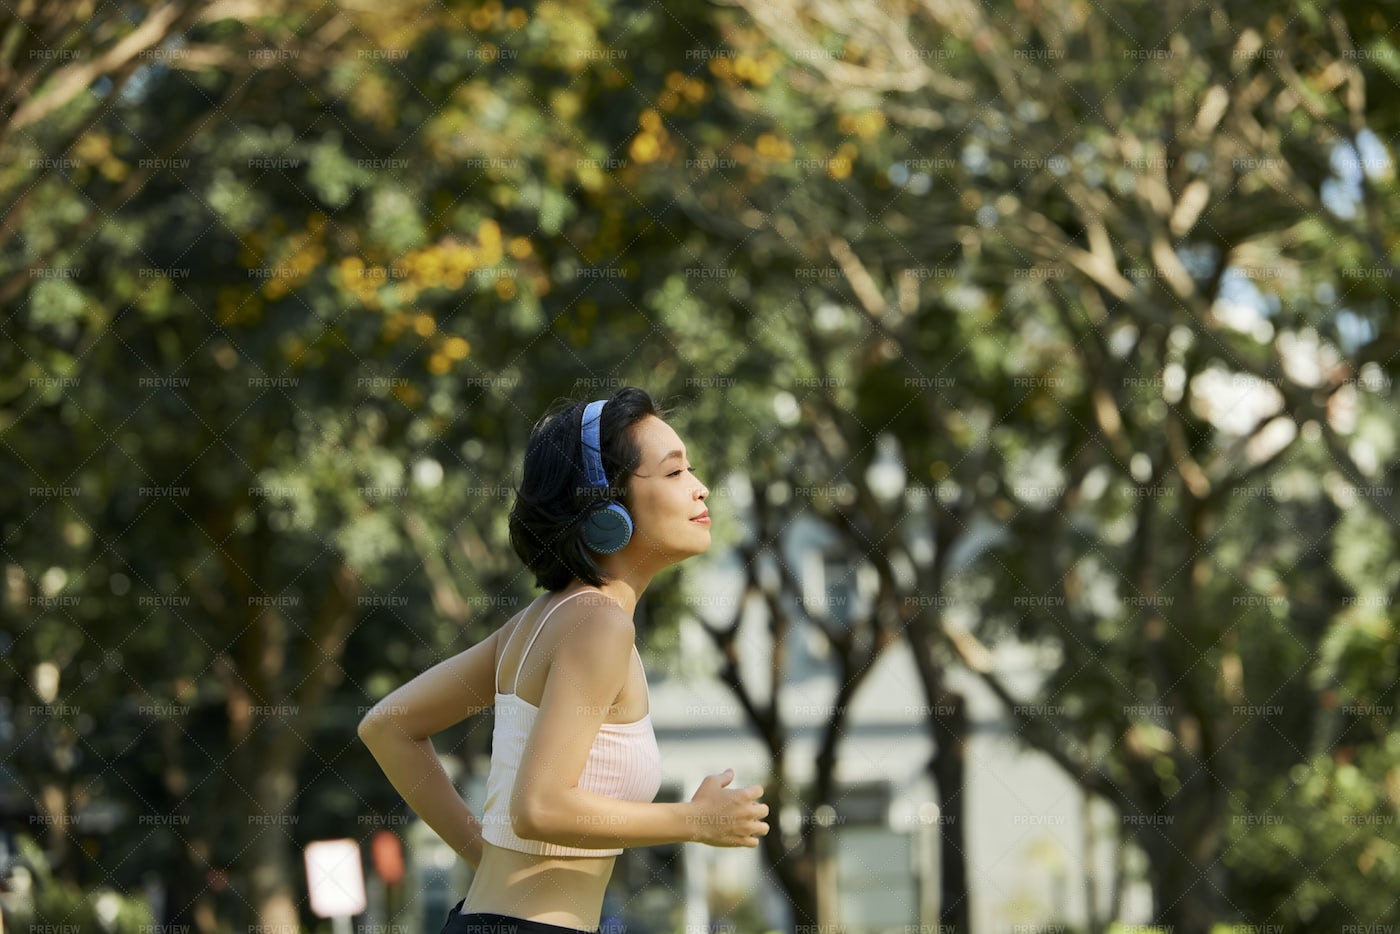 Fit Woman Jogging In Park: Stock Photos